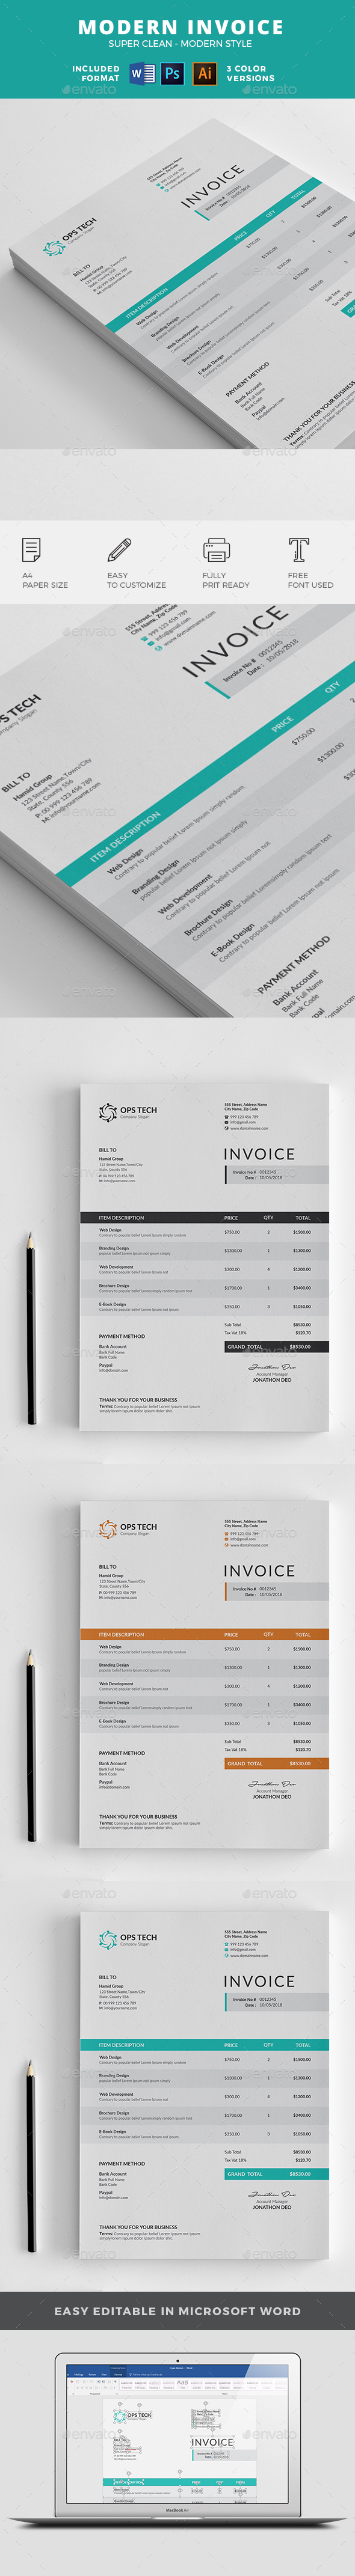 Adp Open Invoice Word Invoice Template Graphics Designs  Templates From Graphicriver Receipt Template Free Word Excel with International Invoice Excel  What Is The Invoice Number